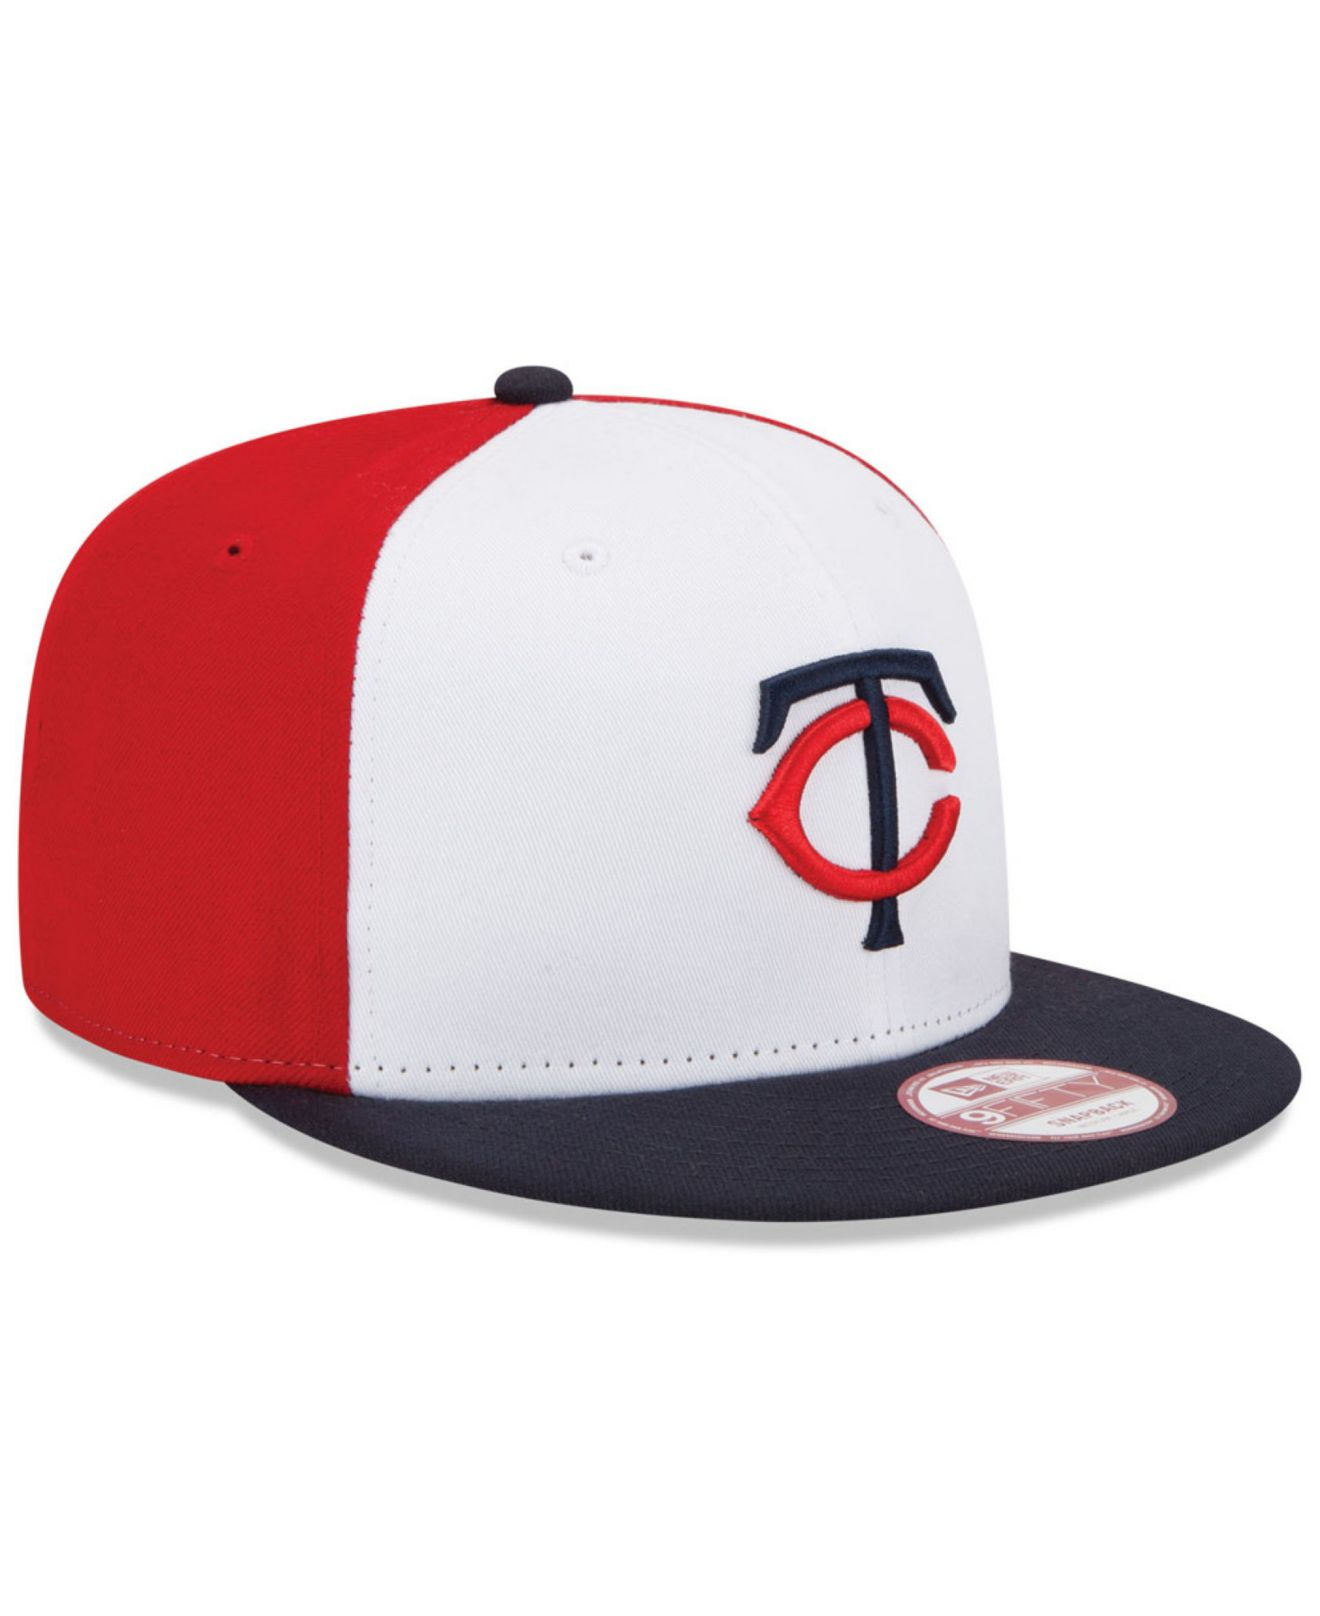 ee6e997a161 ... cheap lyst ktz minnesota twins the rotator 9fifty snapback cap in white  e7af6 84e4f